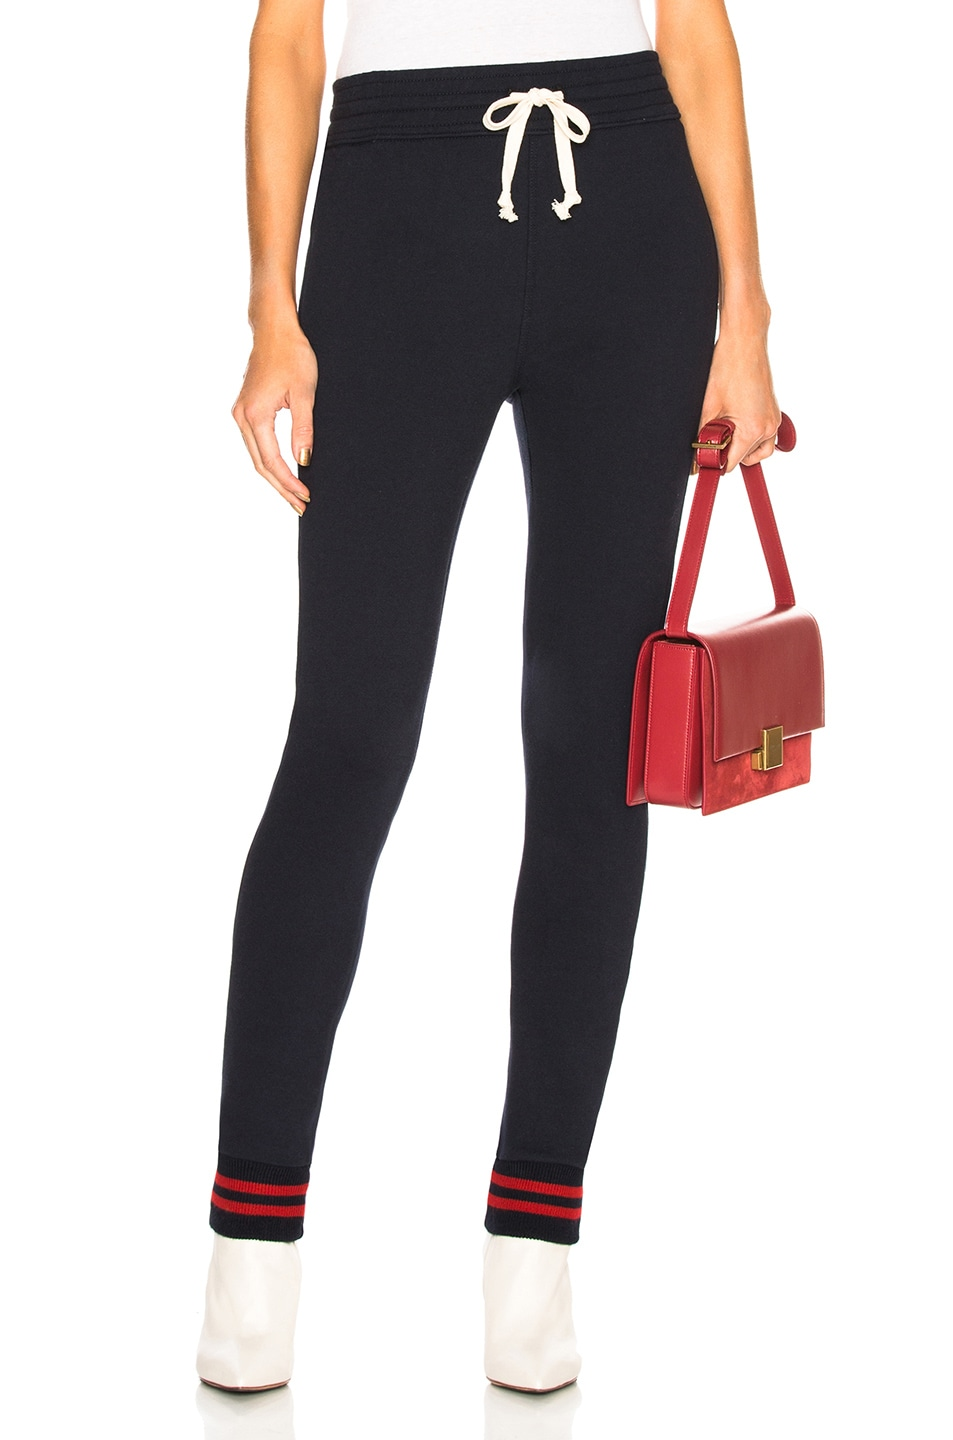 Slim Gym cotton sweatpants Mother Clearance For Sale gDNpHI